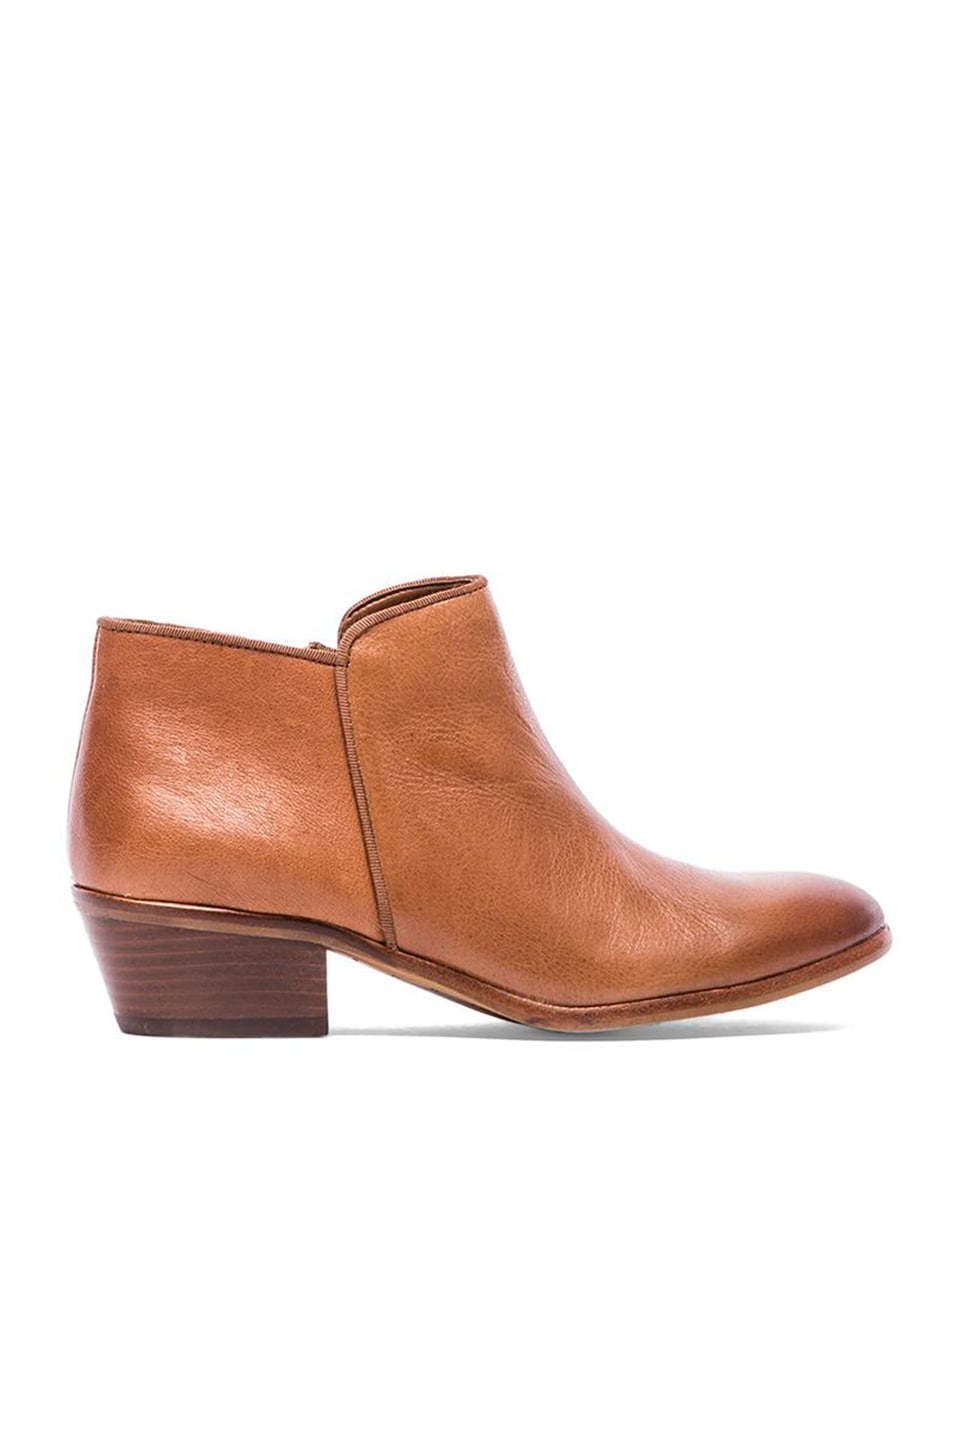 Sam Edelman Petty Bootie in Deep Saddle Vintage Leather